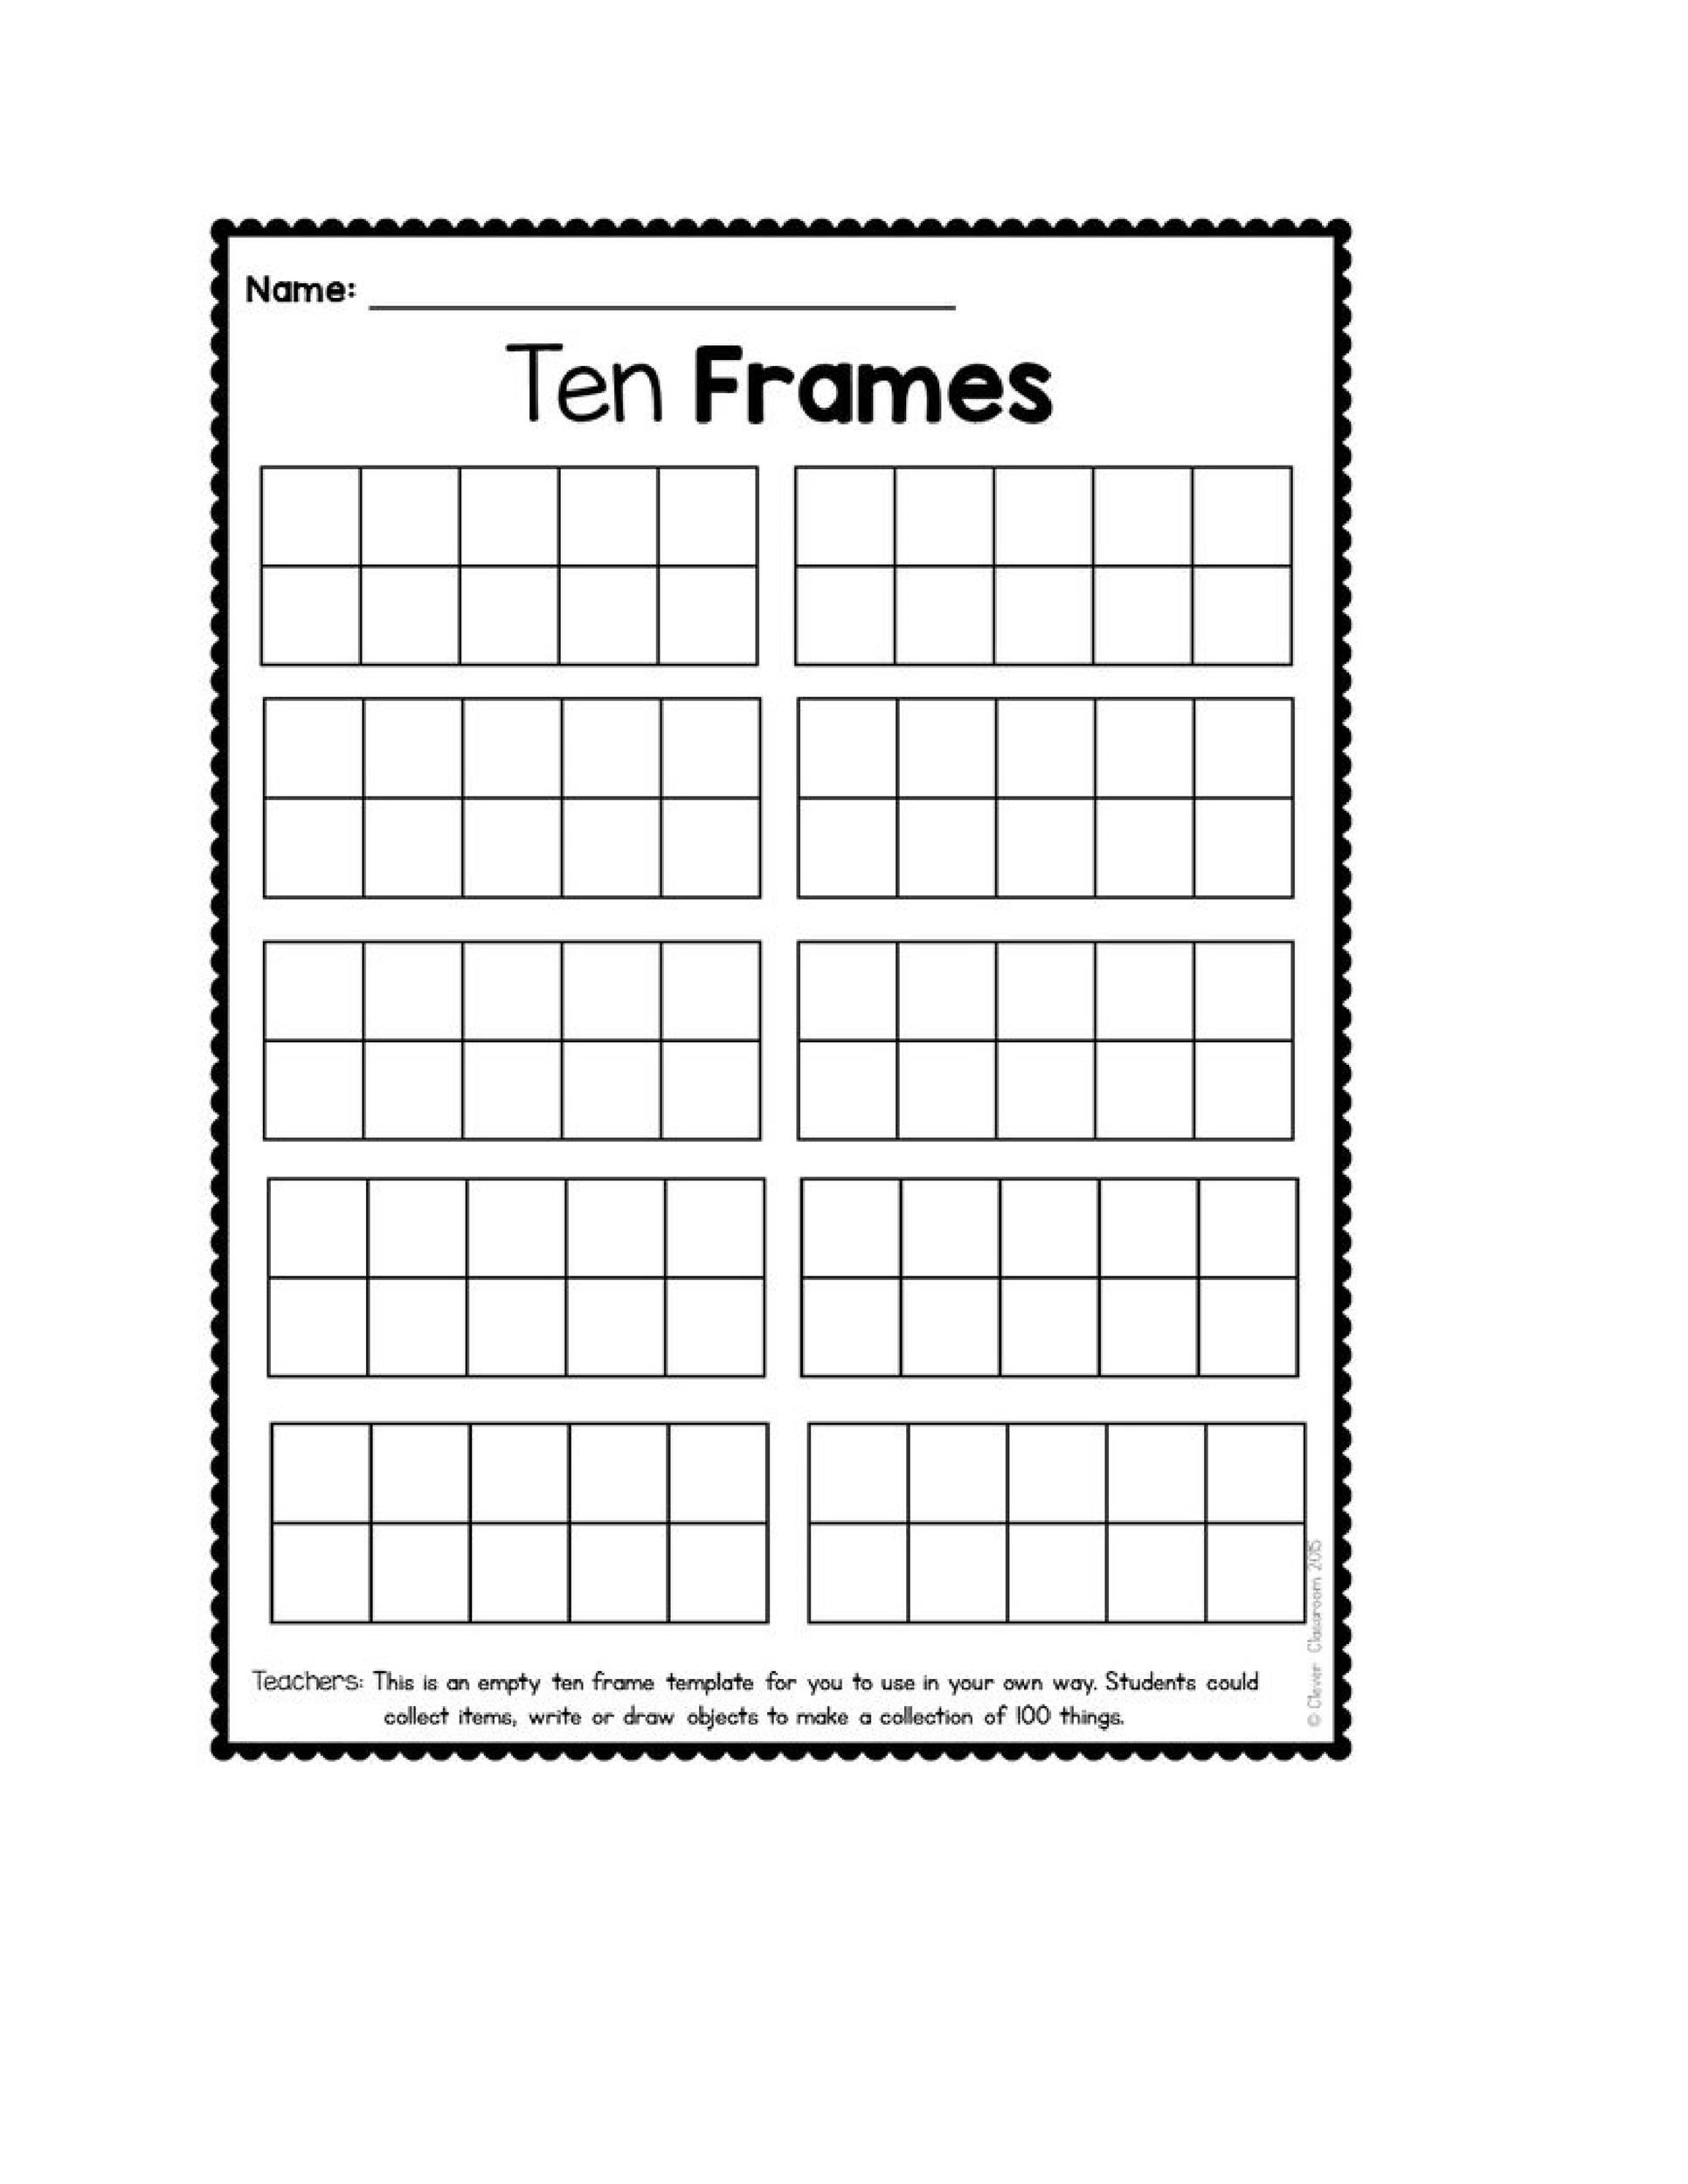 Printable Ten Frame Templates Free  Template Lab